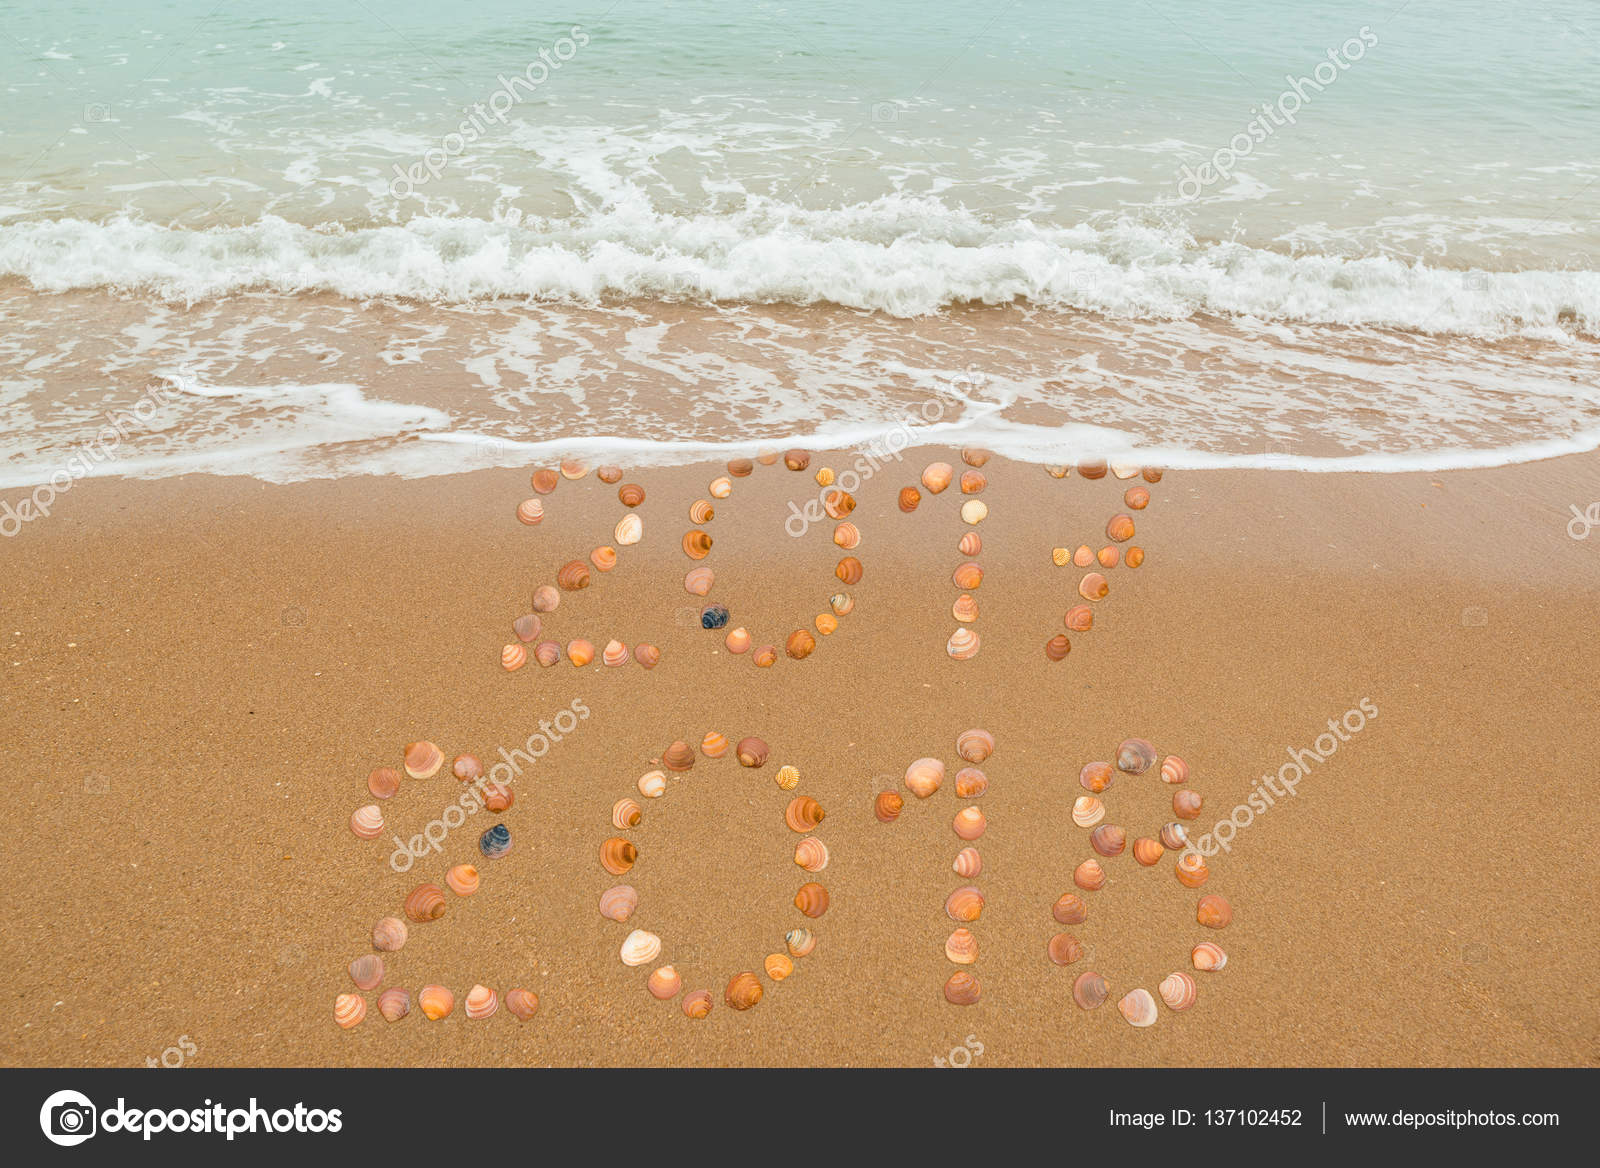 happy new year 2018 concept the waves are about to cover 2017 both years placed with seashells on the beach photo by franky242